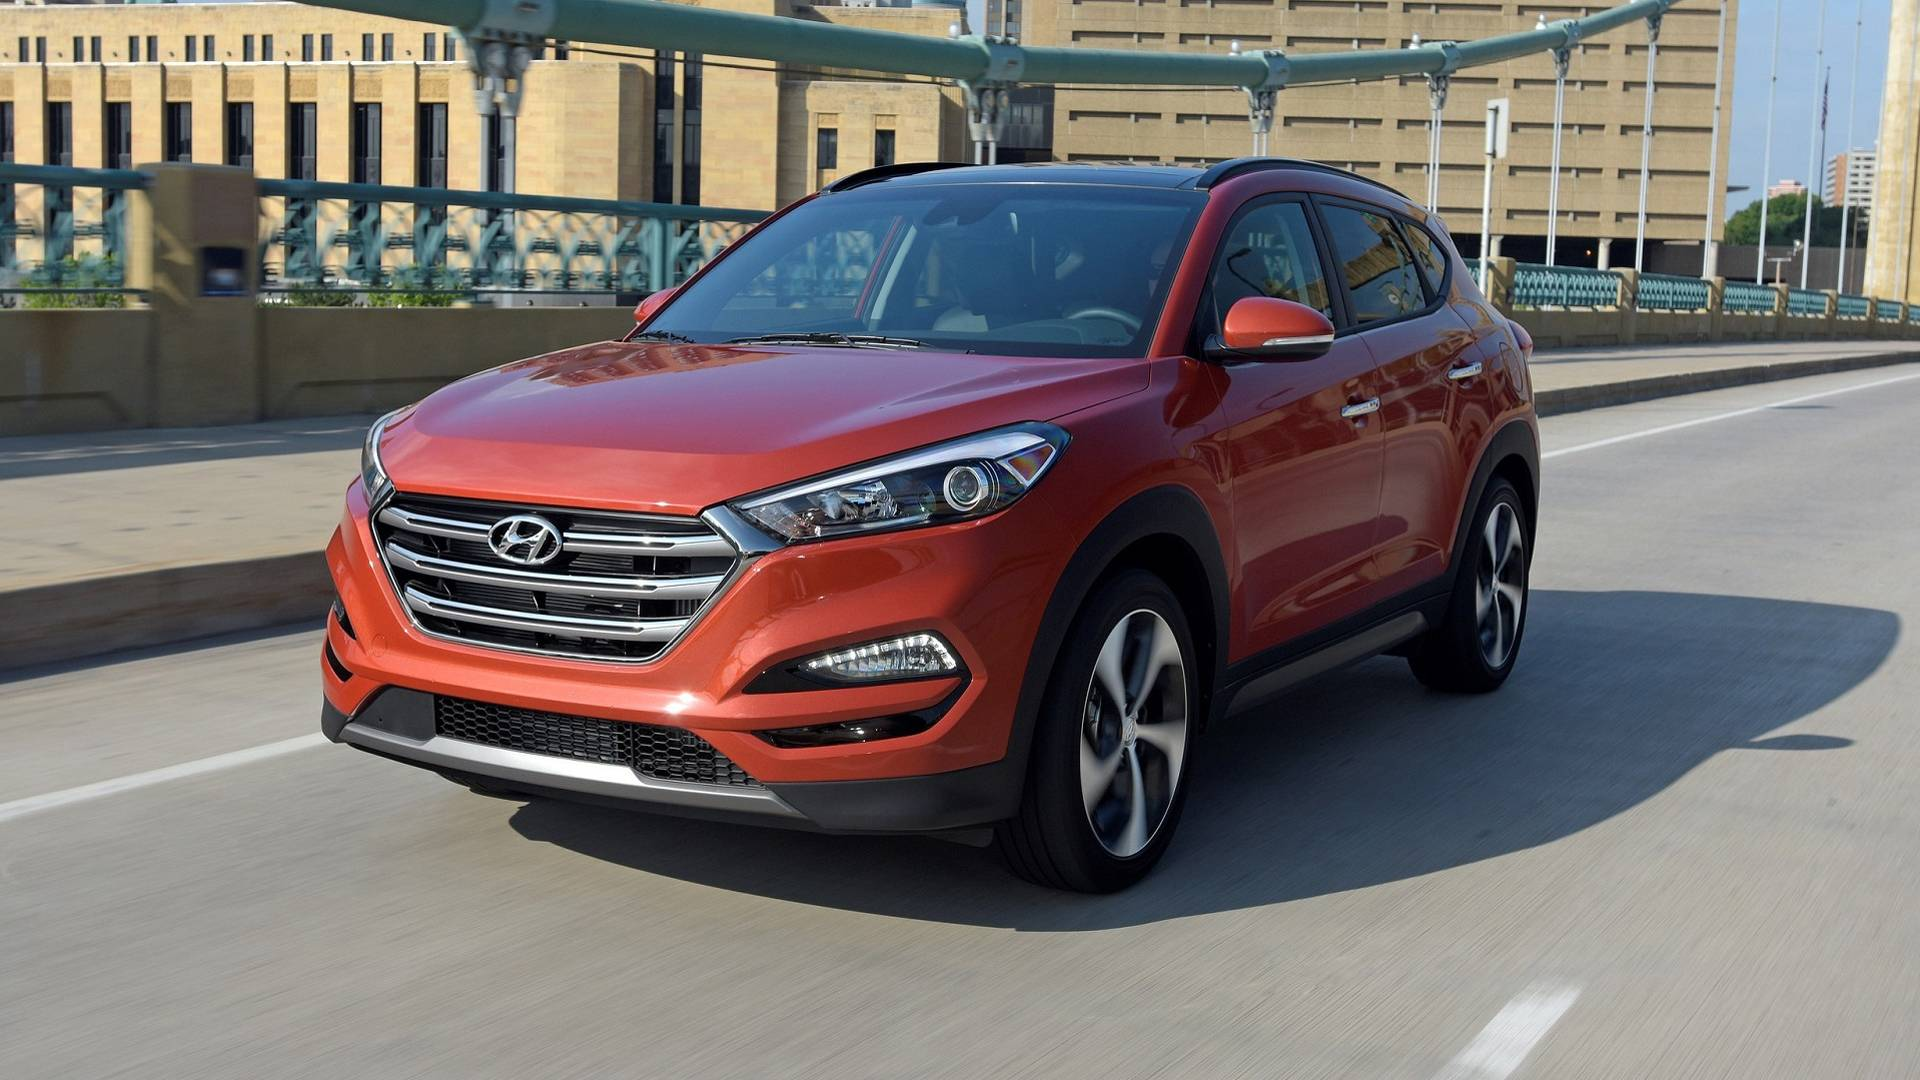 Hyundai Tucson Best-selling SUVs in Canada